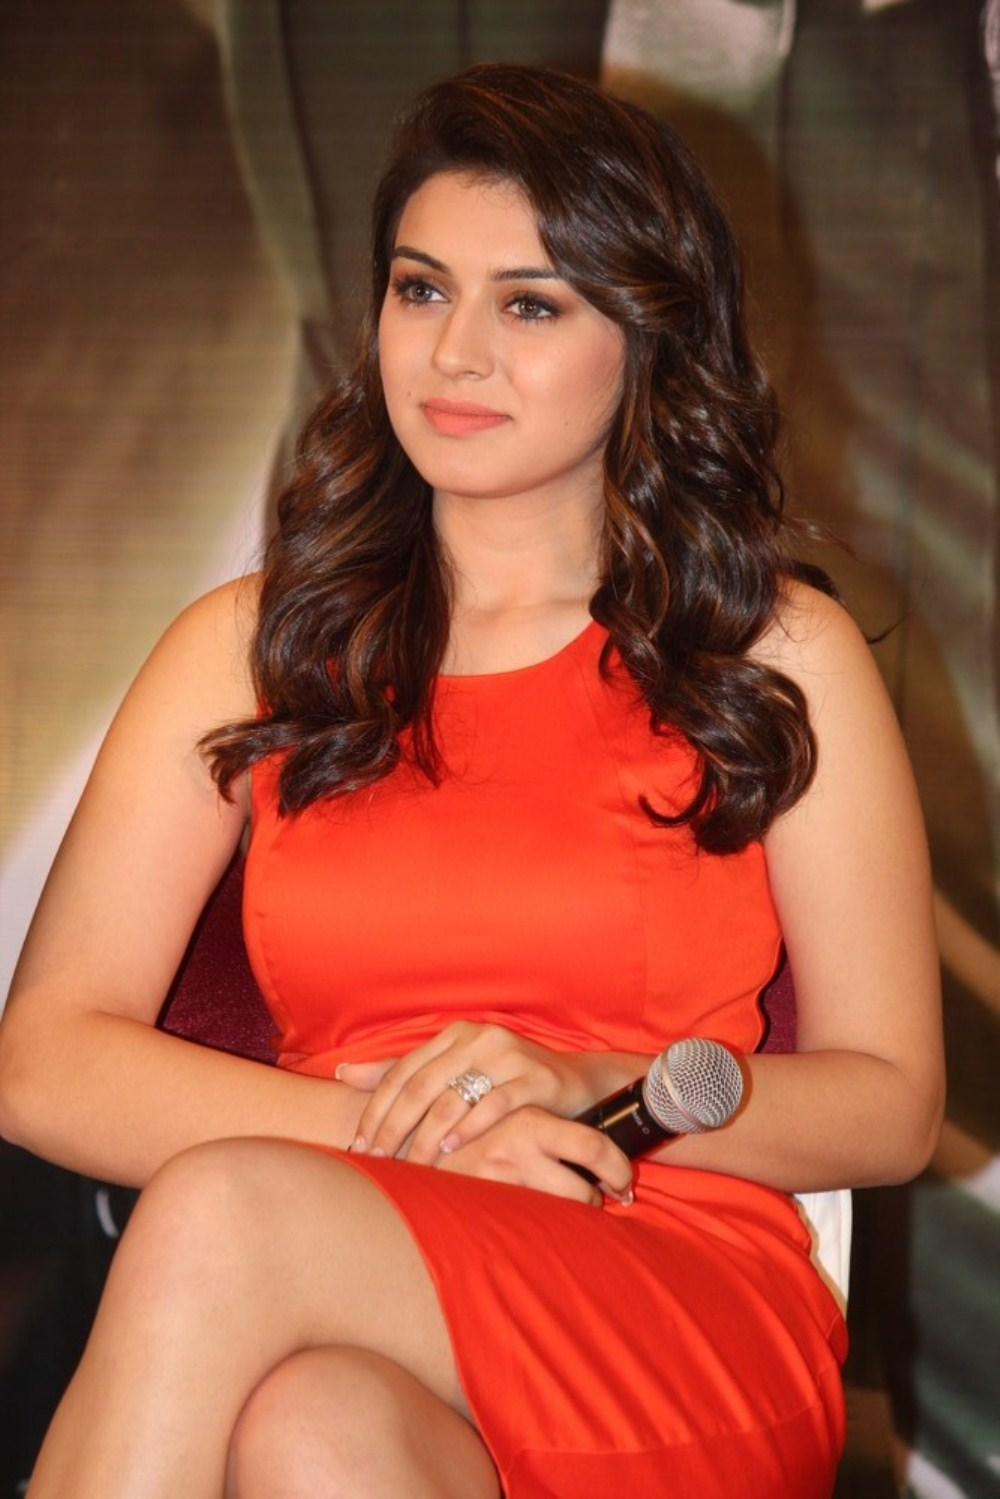 That interfere, Hansika motwani high quality nude pictures